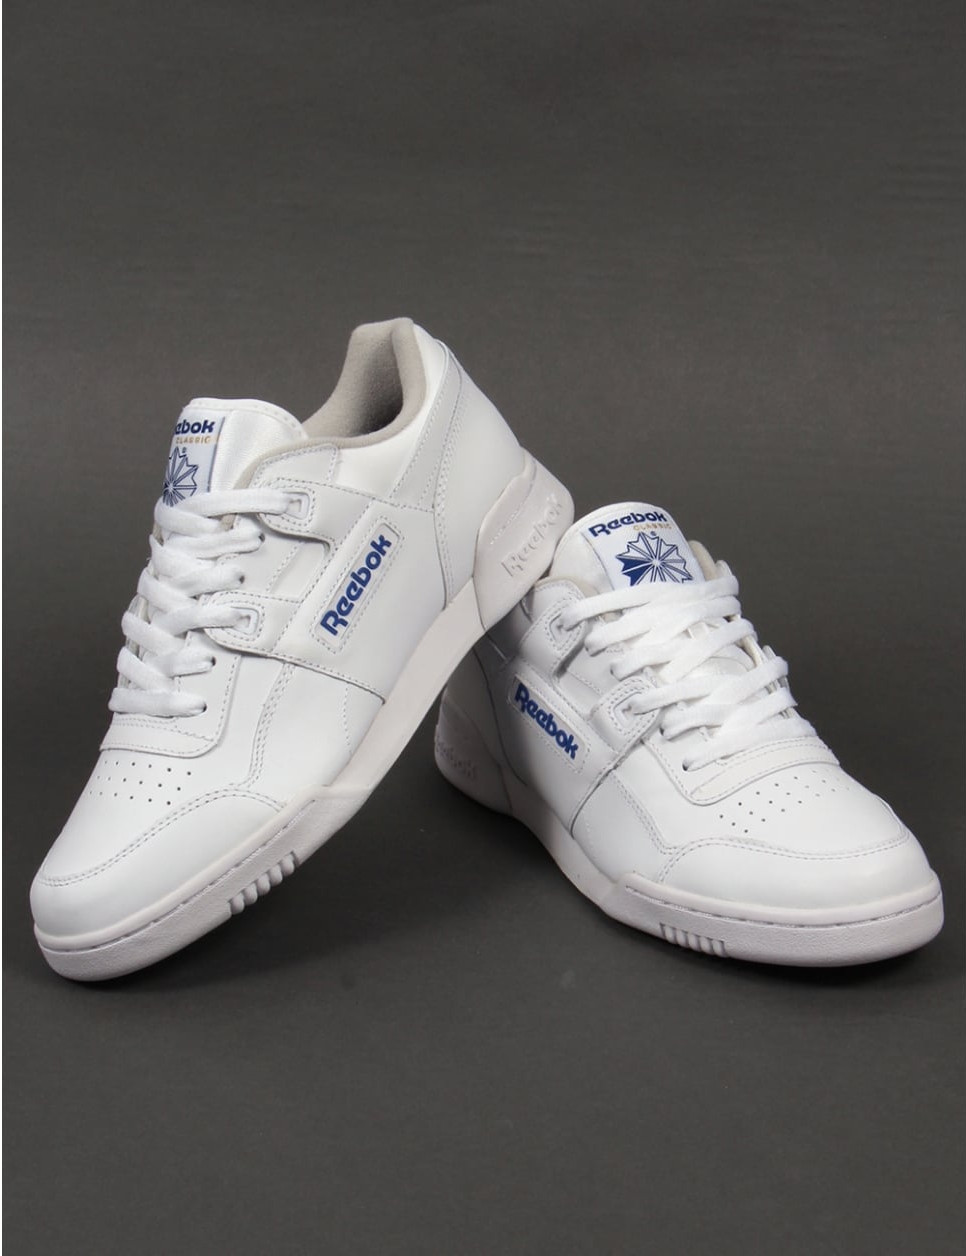 63be2eb0294 It ll Be All White On The Night With These Classics From Reebok ...